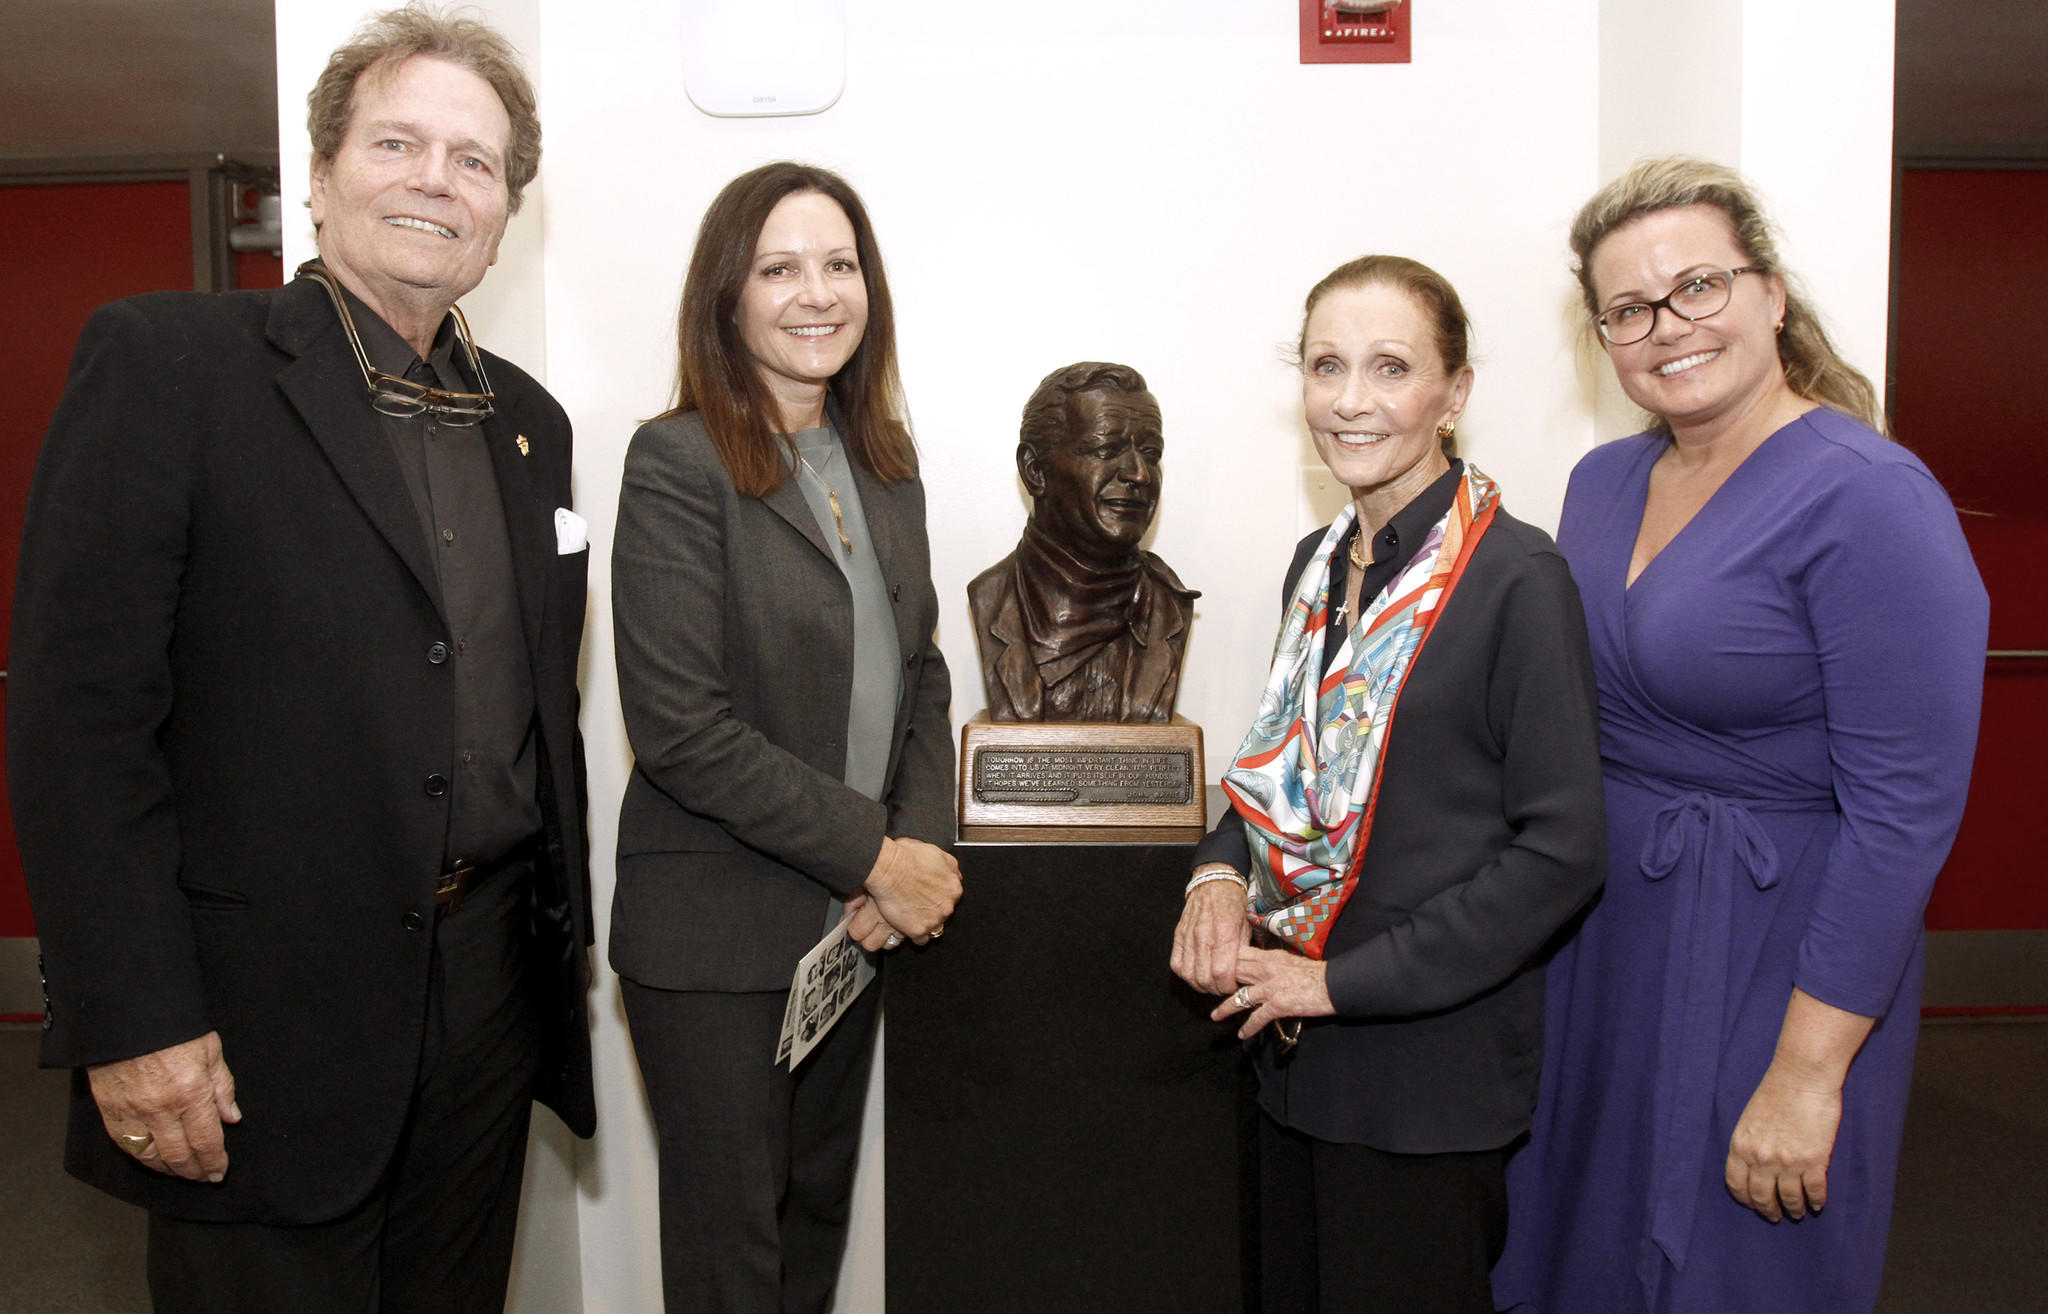 From left, John Wayne's son Patrick Wayne, John Wayne's granddaughter Maria King, King's mother and daughter-in-law (and widow to Michael Wayne) Gretchen Wayne, and granddaughter Josie Wayne attended the dedication ceremony for the Glendale High School John Wayne Performing Arts Center in Glendale on Friday, March 28, 2014.